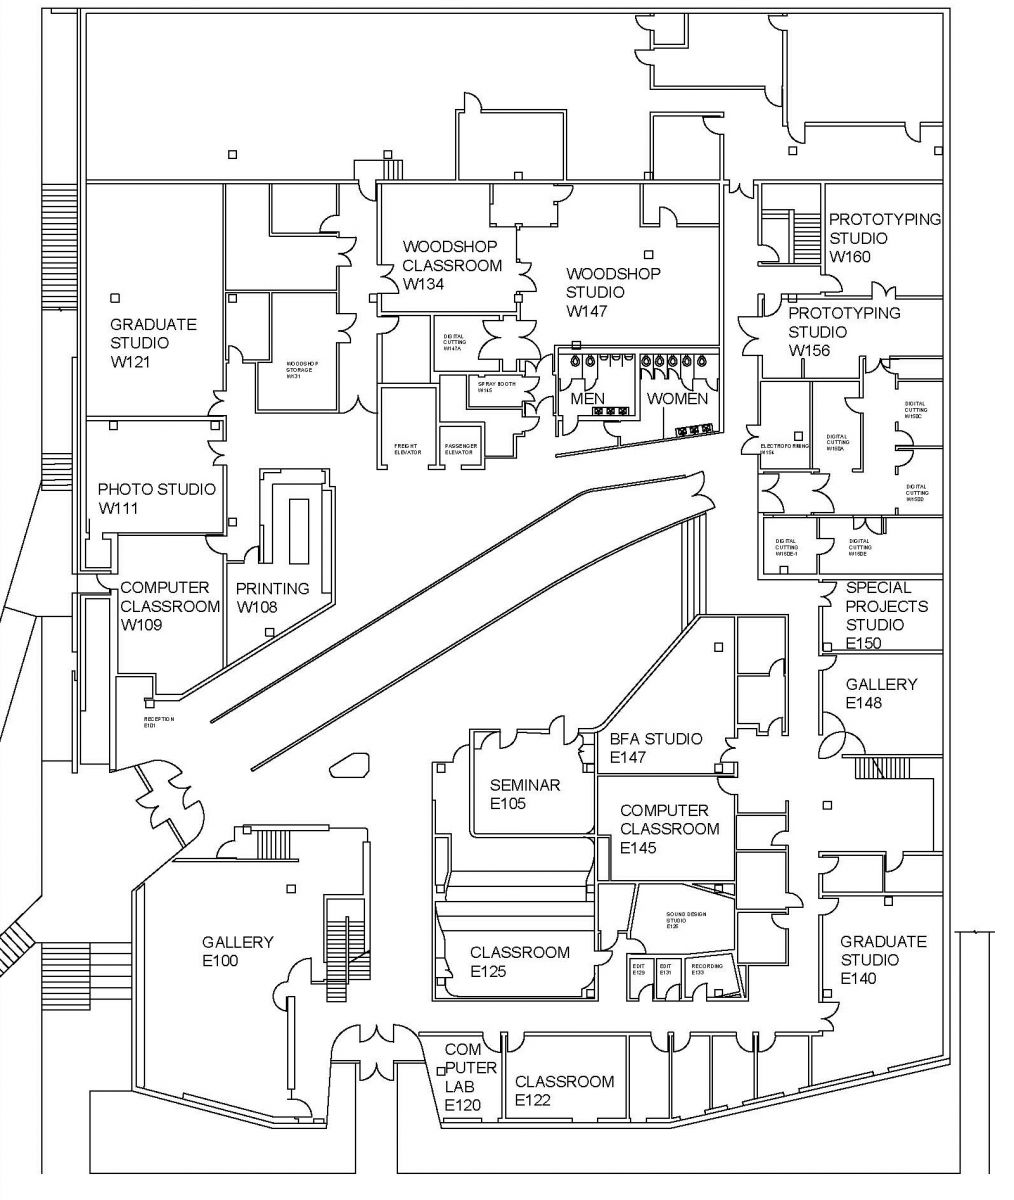 Visual Arts Building Floor Plans School Of Art And Art History